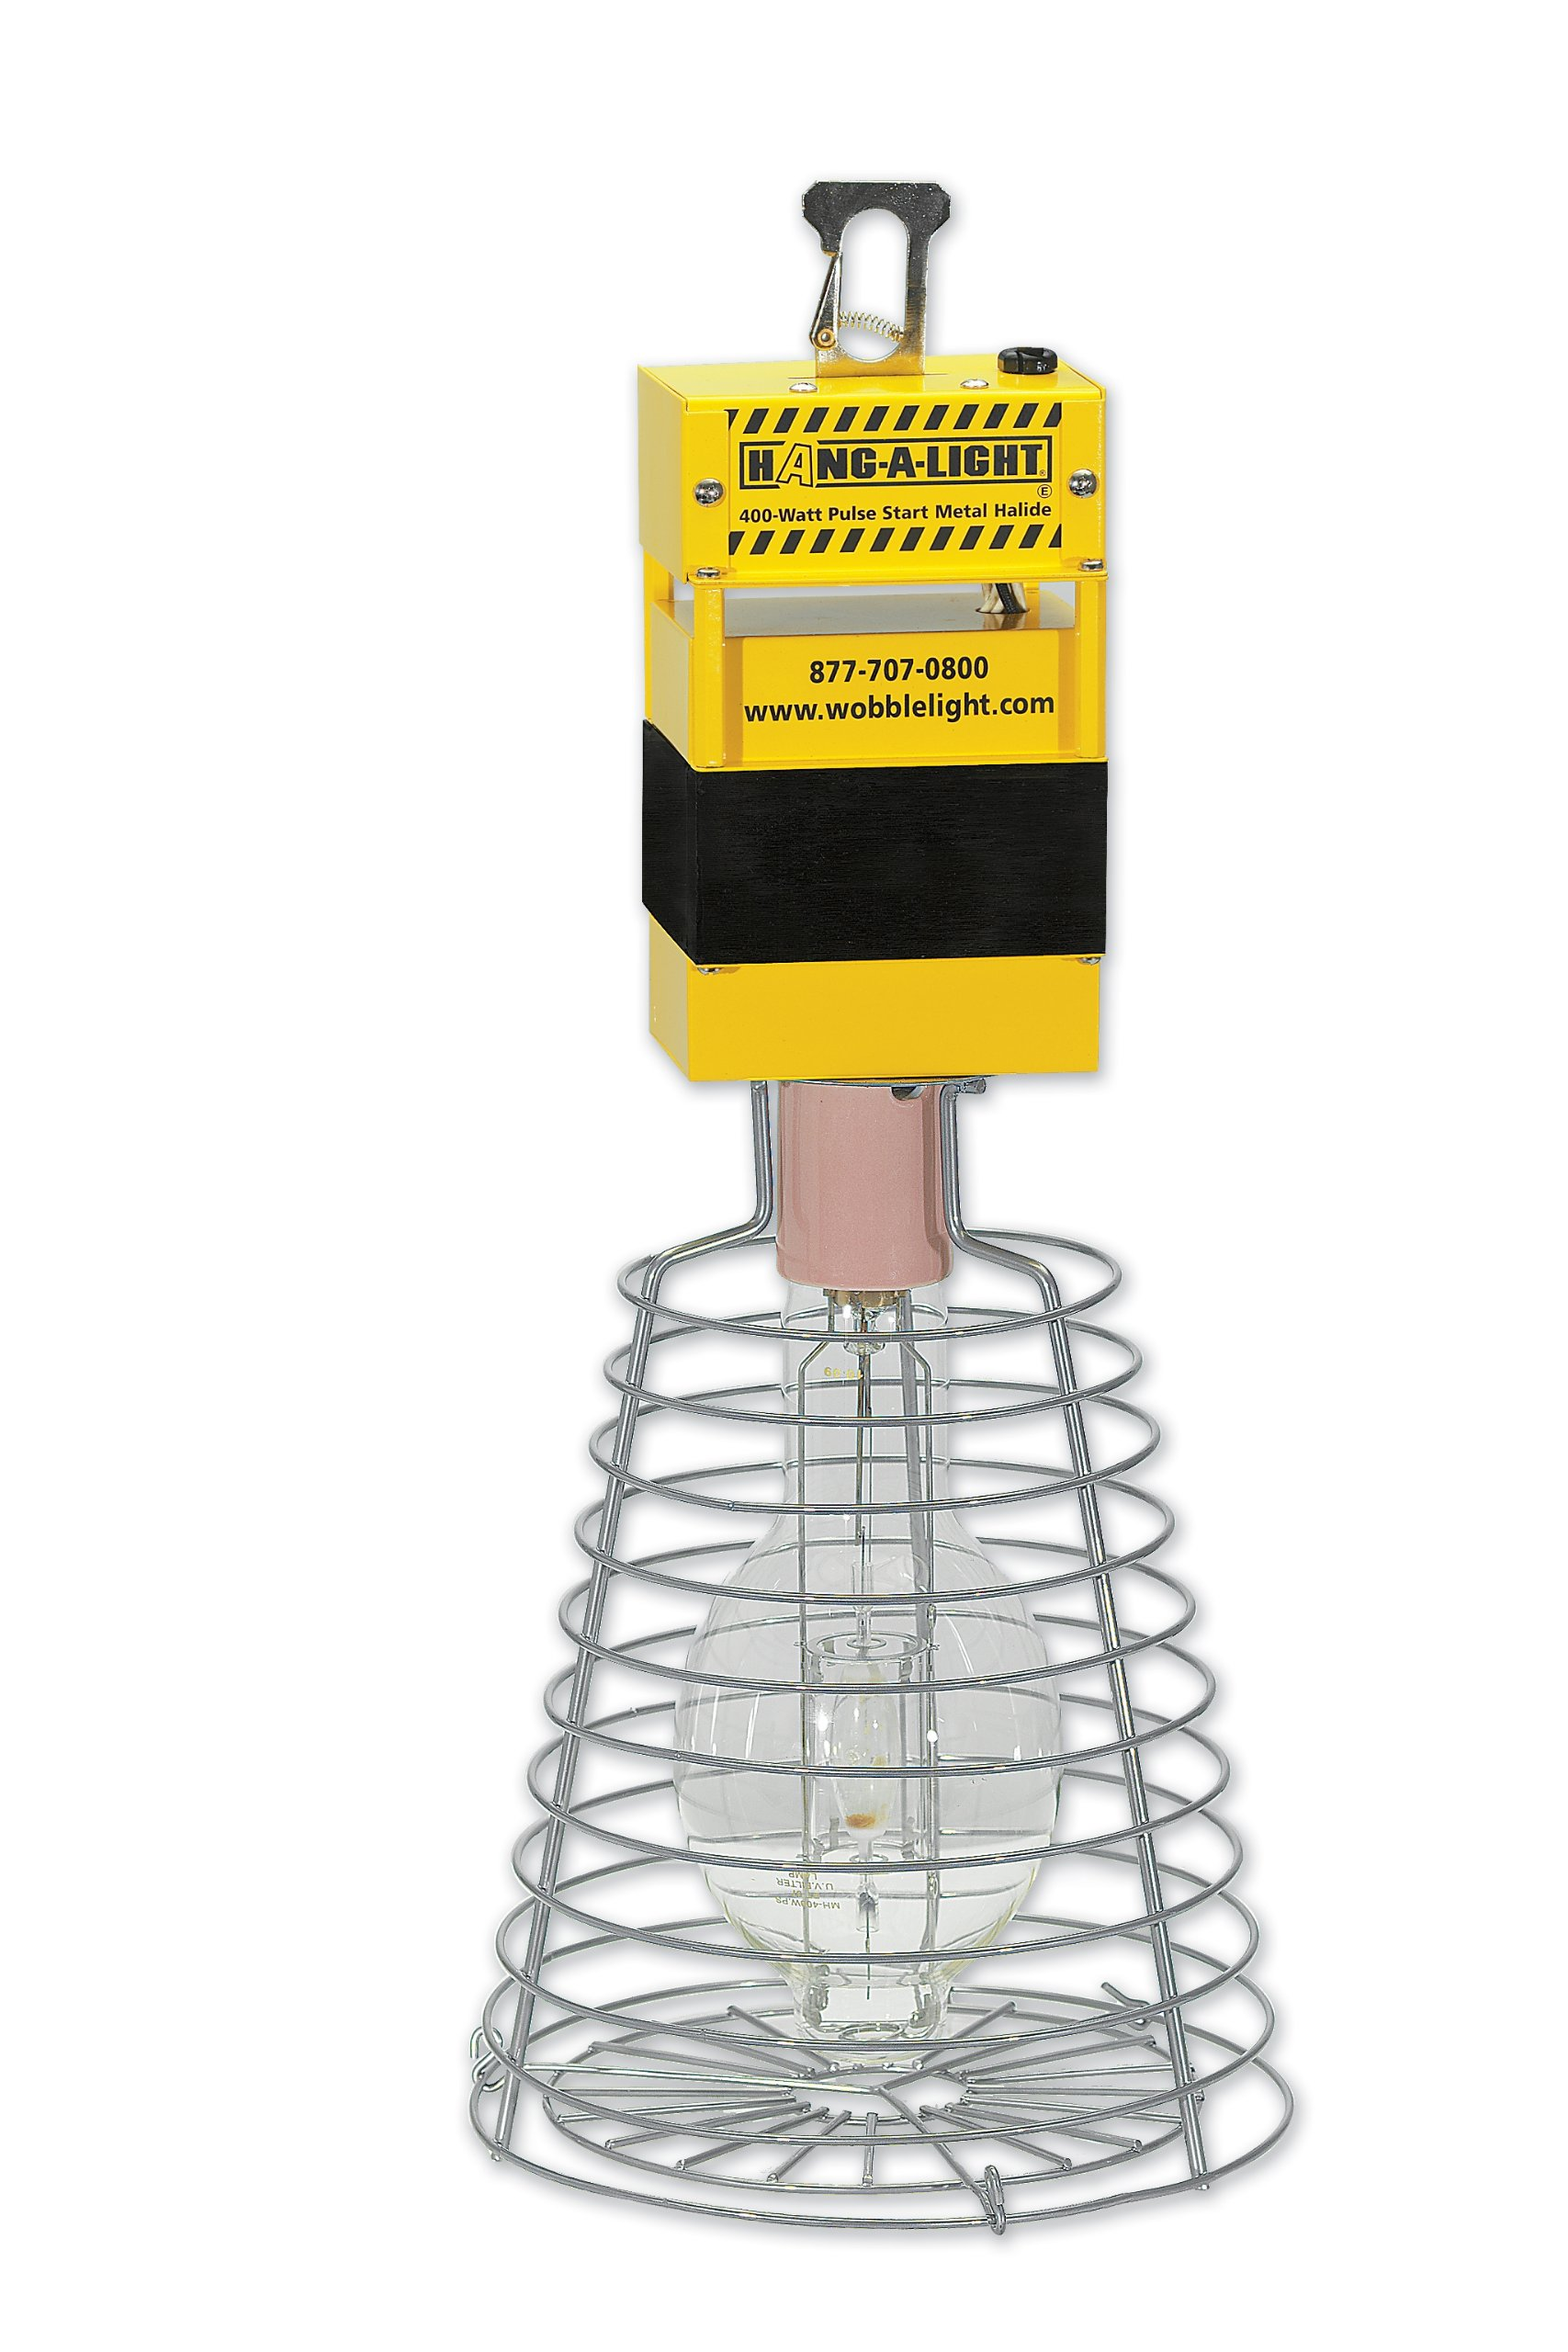 Hang-A-Light HL400PS 400w Pulse Start Metal Halide 24-Inch Tall Temporary Work Light, Yellow by ProBuilt